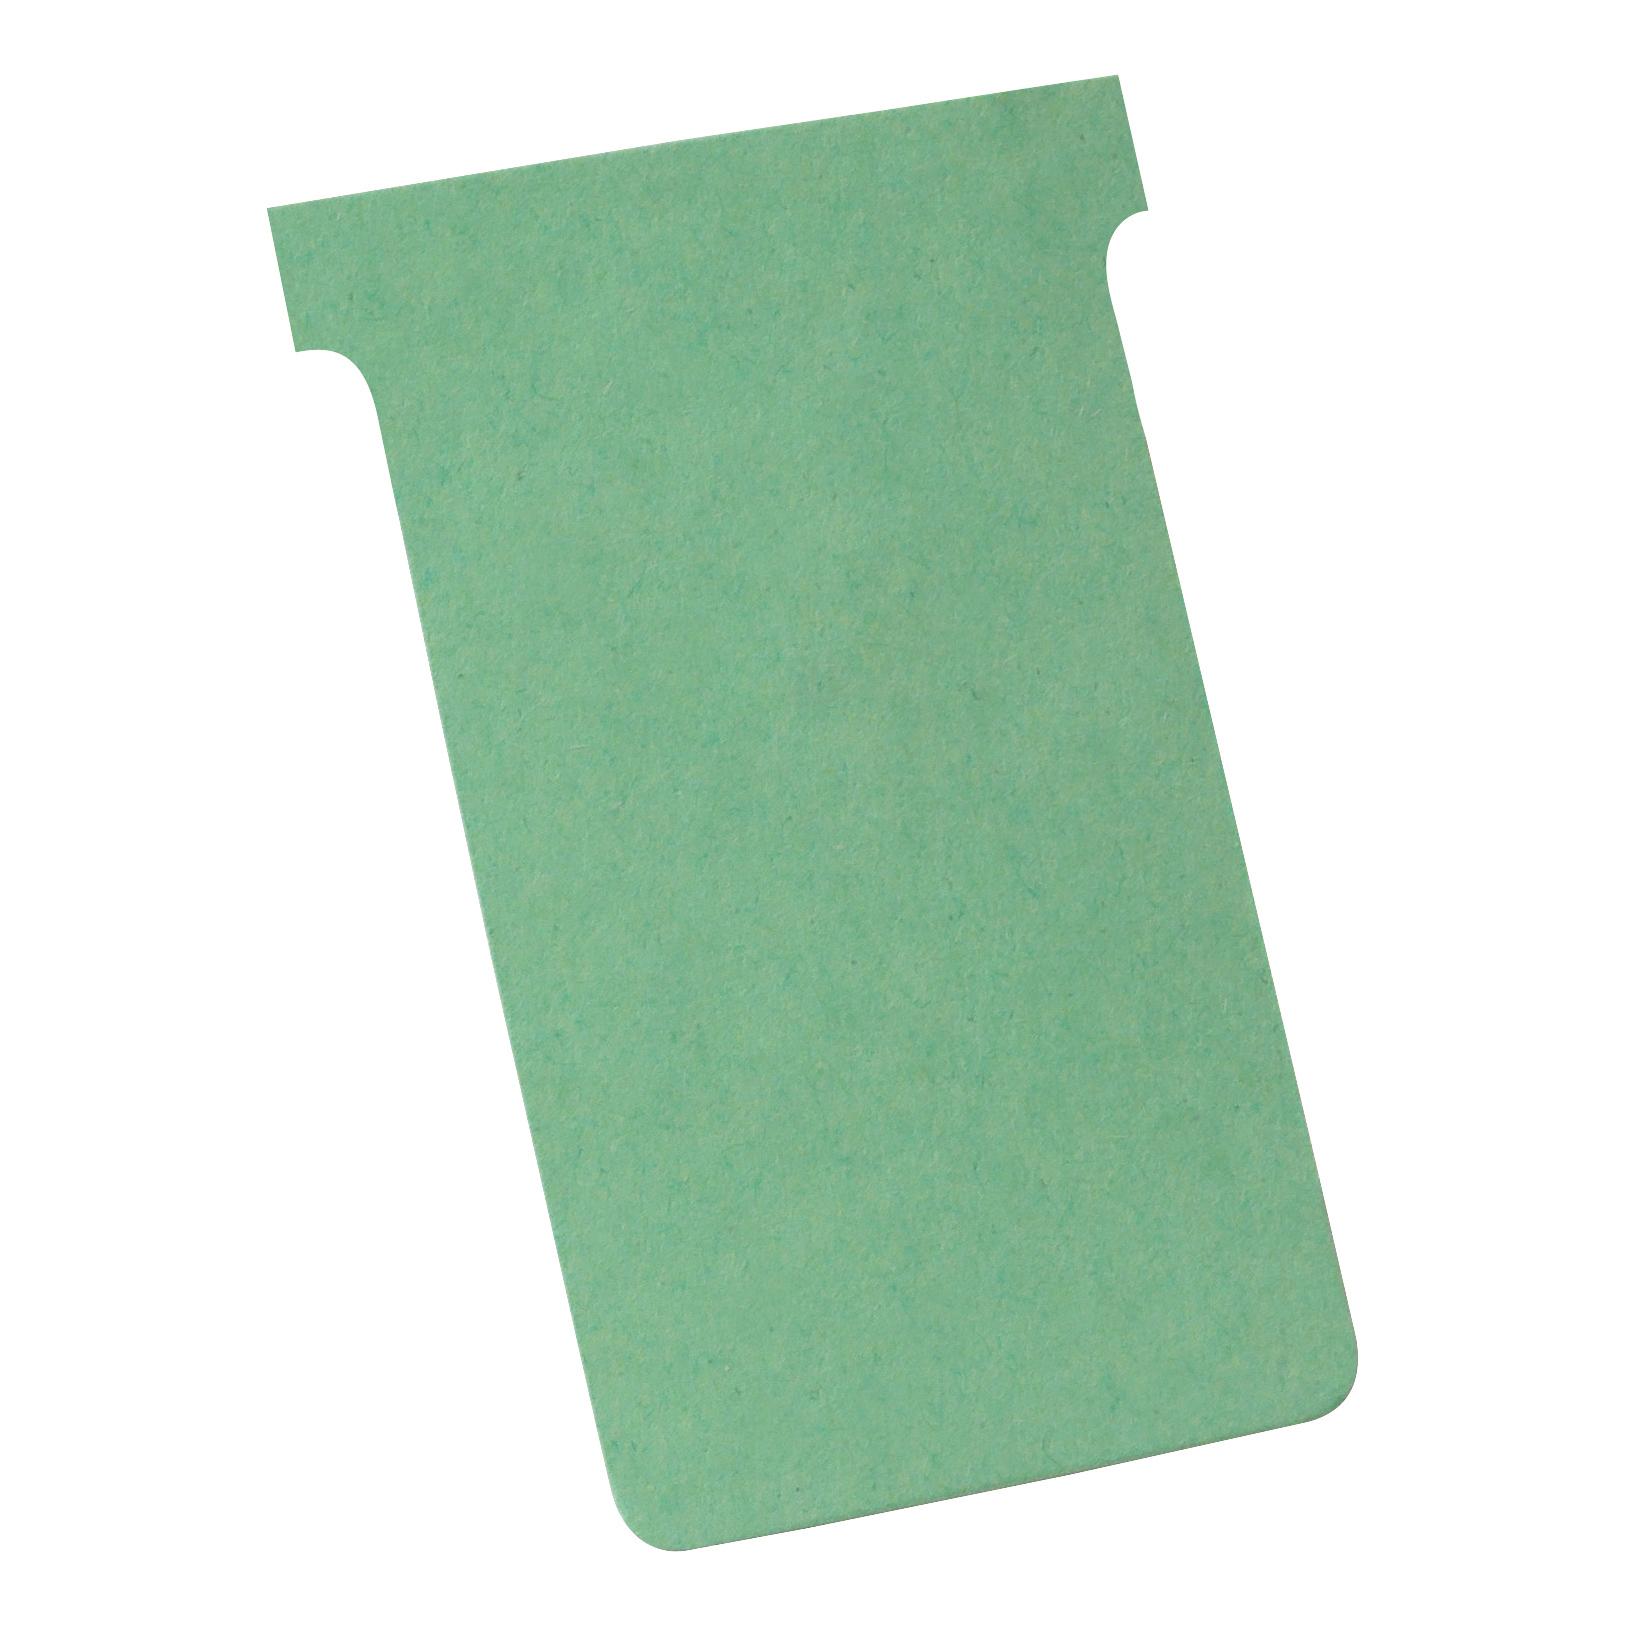 Nobo T-Cards 160gsm Tab Top 15mm W123x Bottom W112x Full H178mm Size 4 Green Ref 32938924 Pack 100